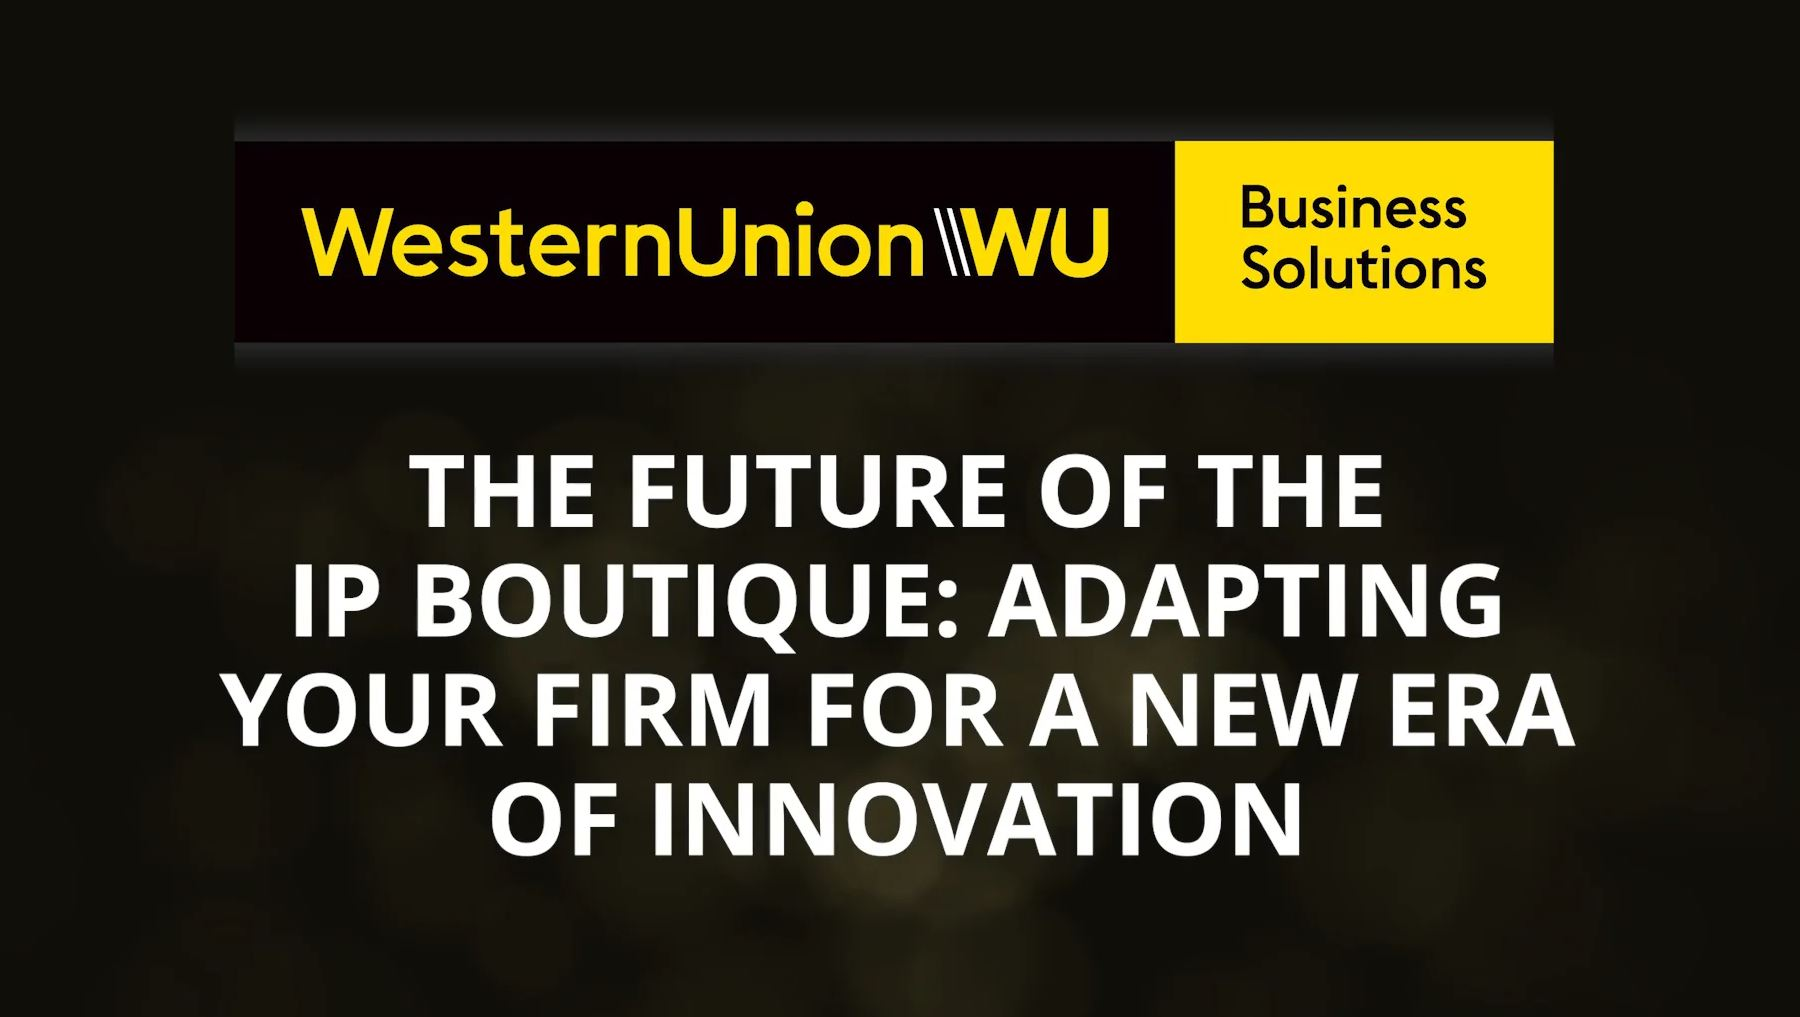 The future of the IP boutique: Adapting your firm for a new era of innovation